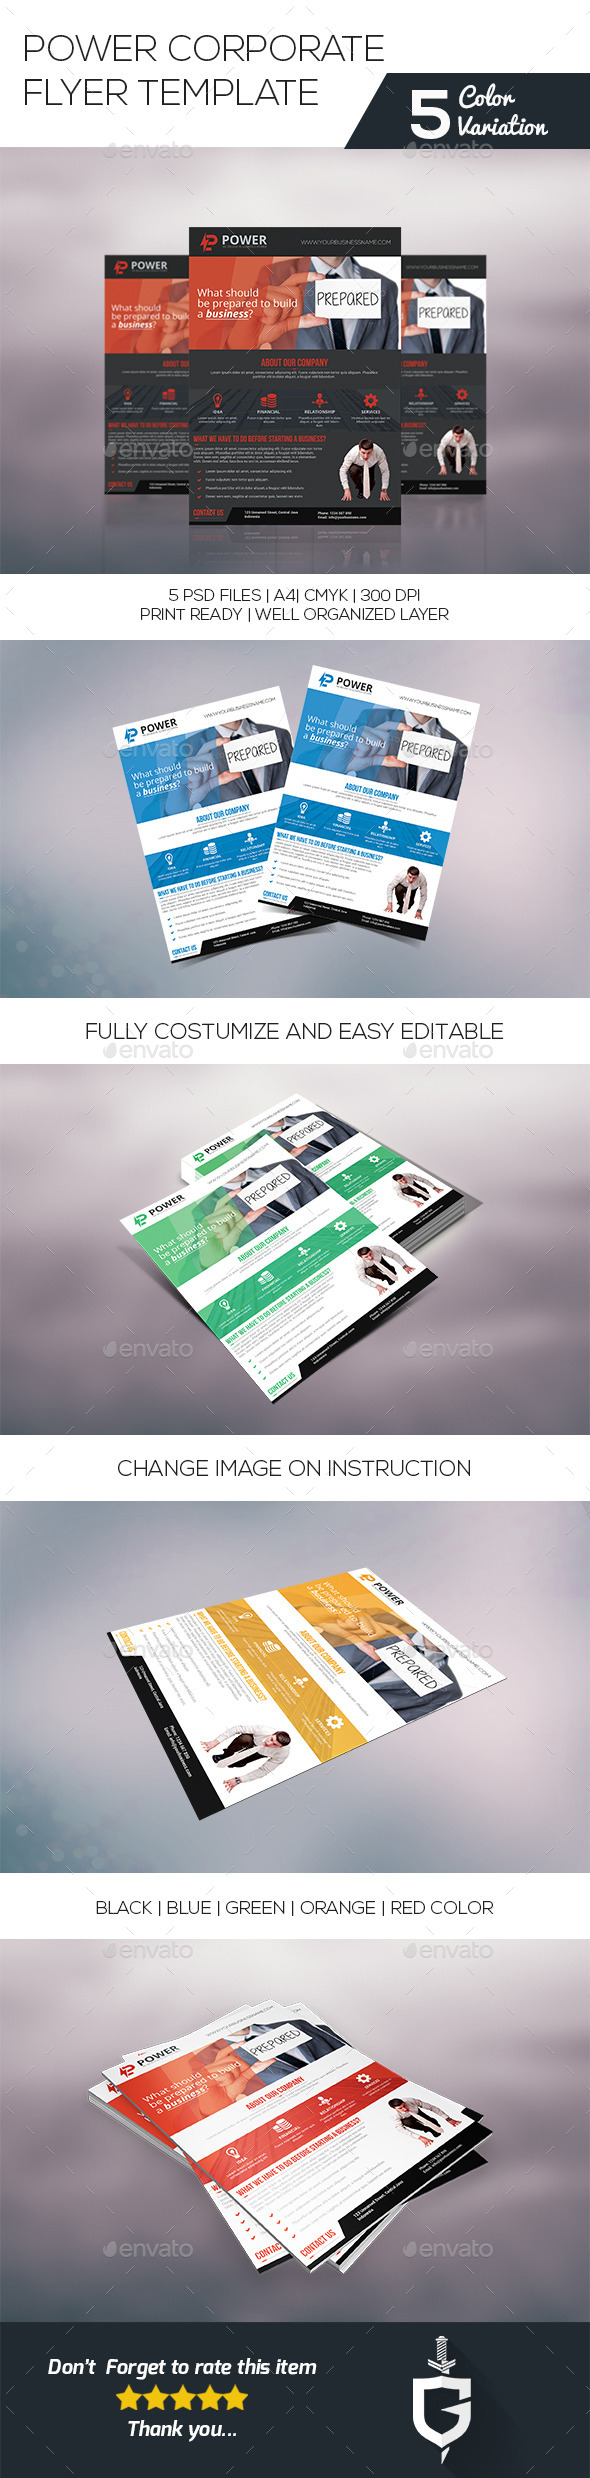 Power Corporate Flyer Template - Corporate Flyers